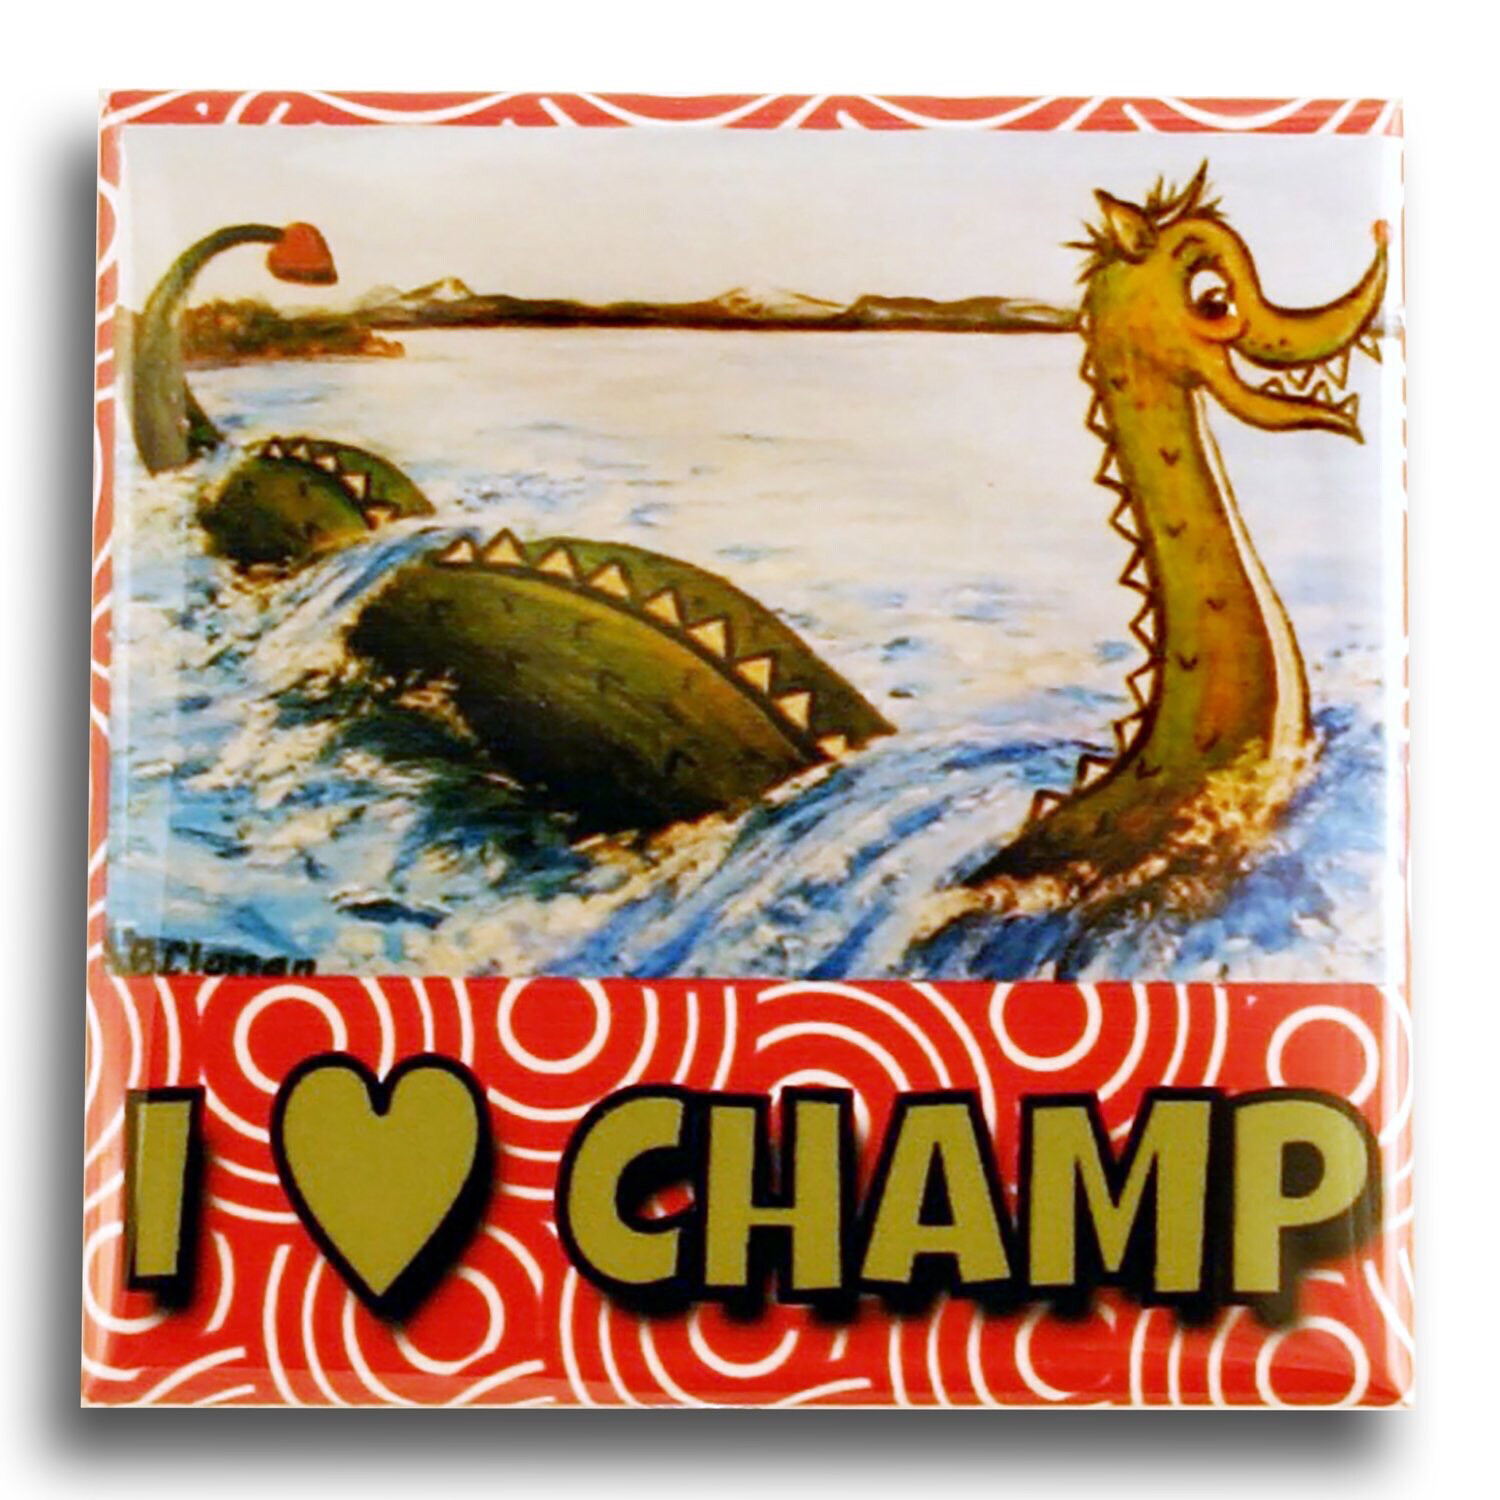 I Heart Champ Magnet